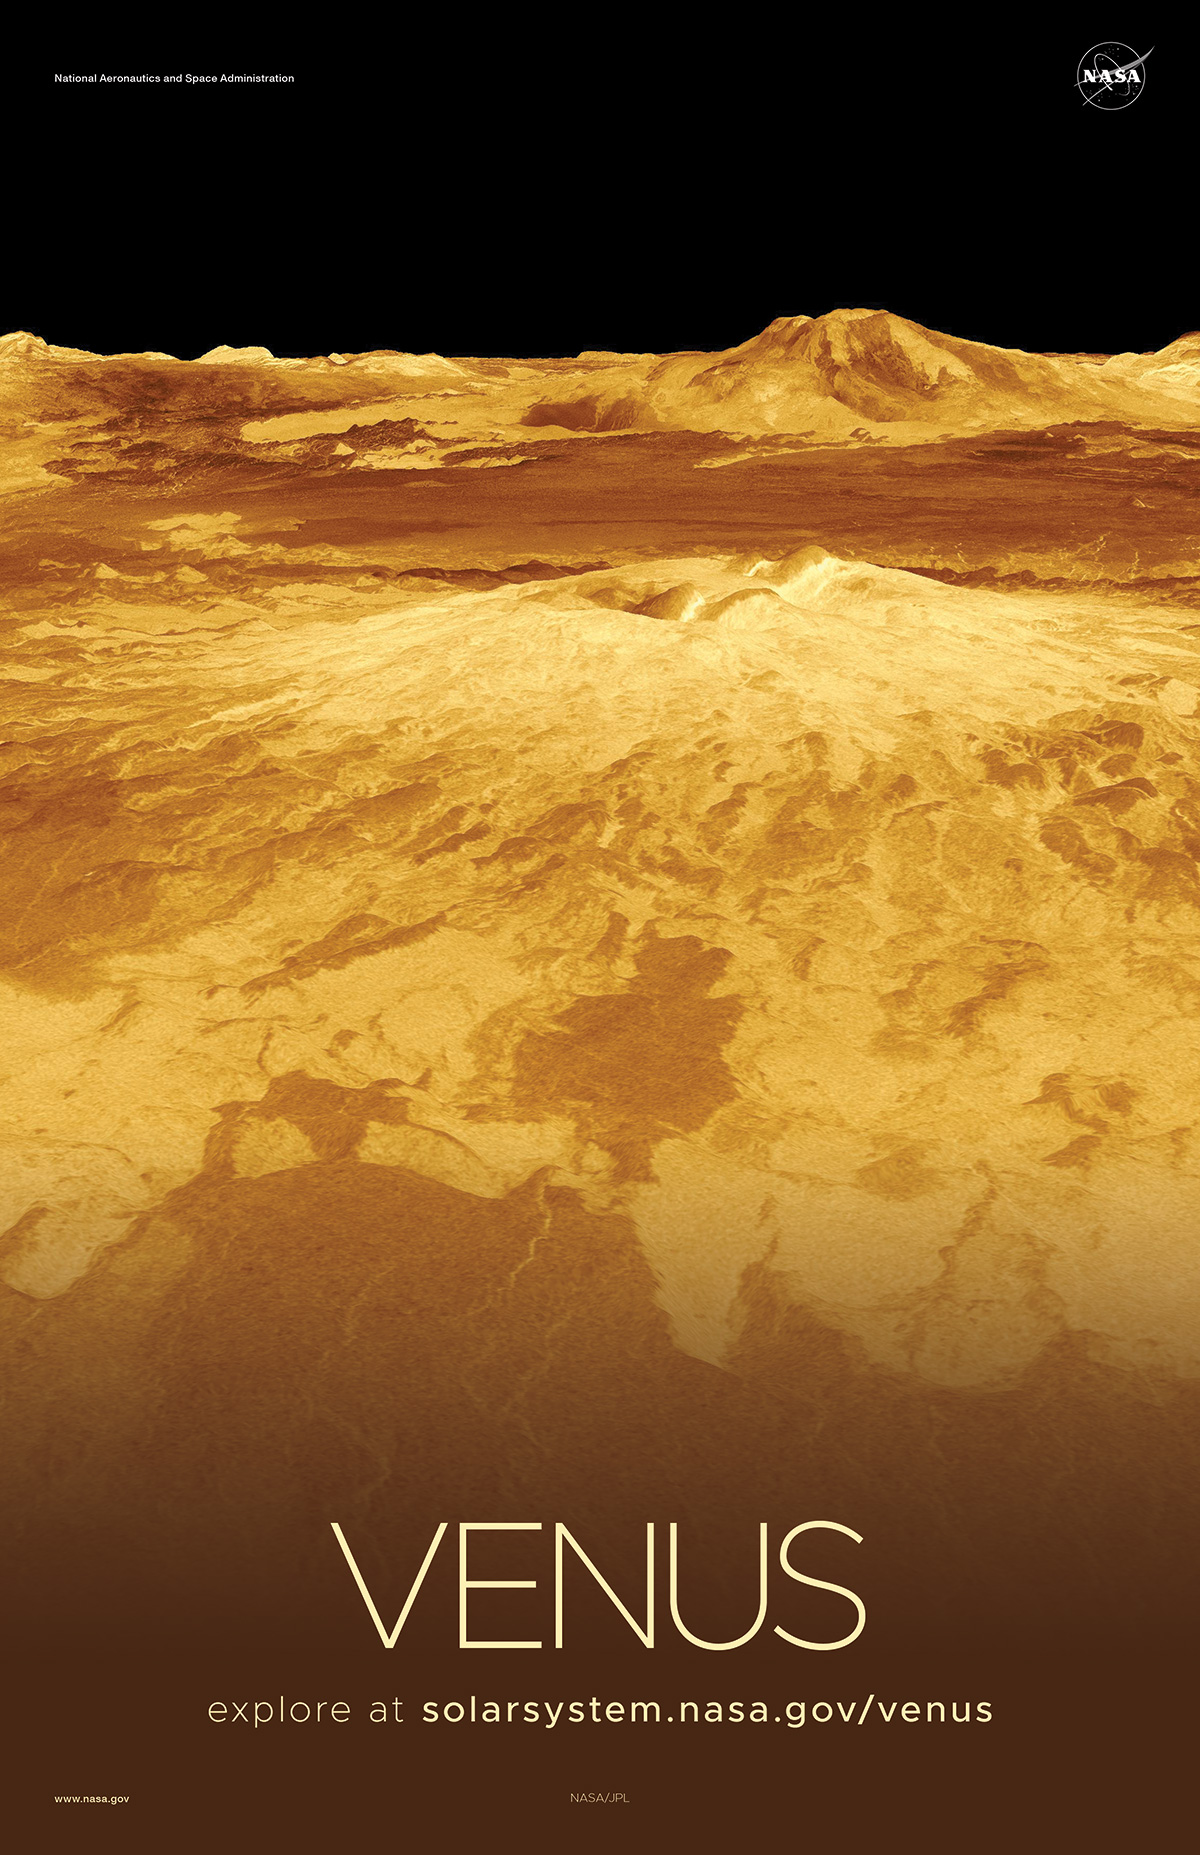 Radar-generated Surface view of Venus.